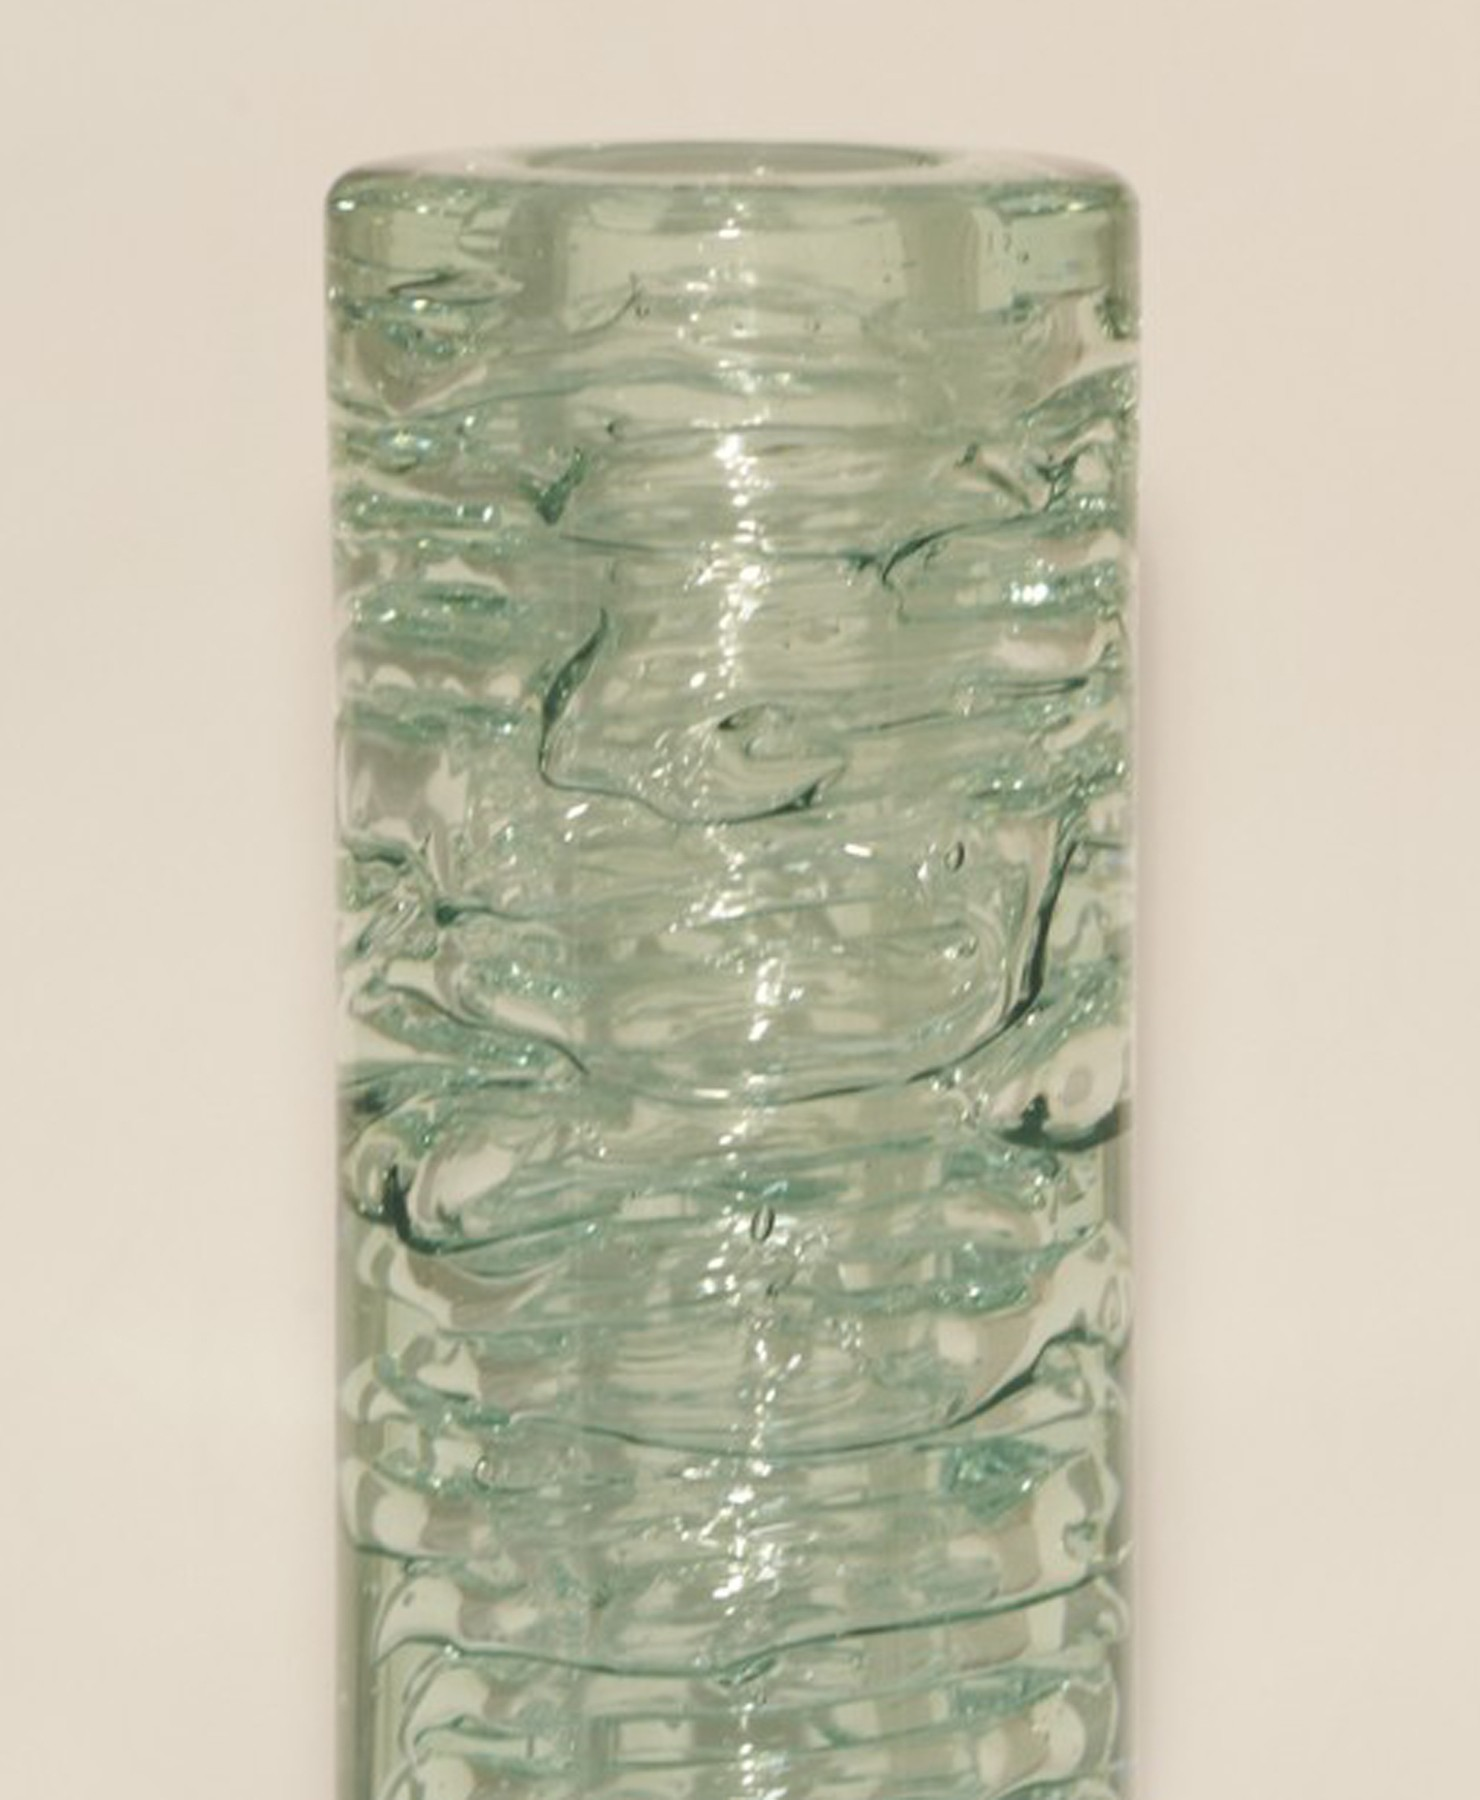 Skrdlovice Unique Glass Whirlpool  Vase 1968 13 in